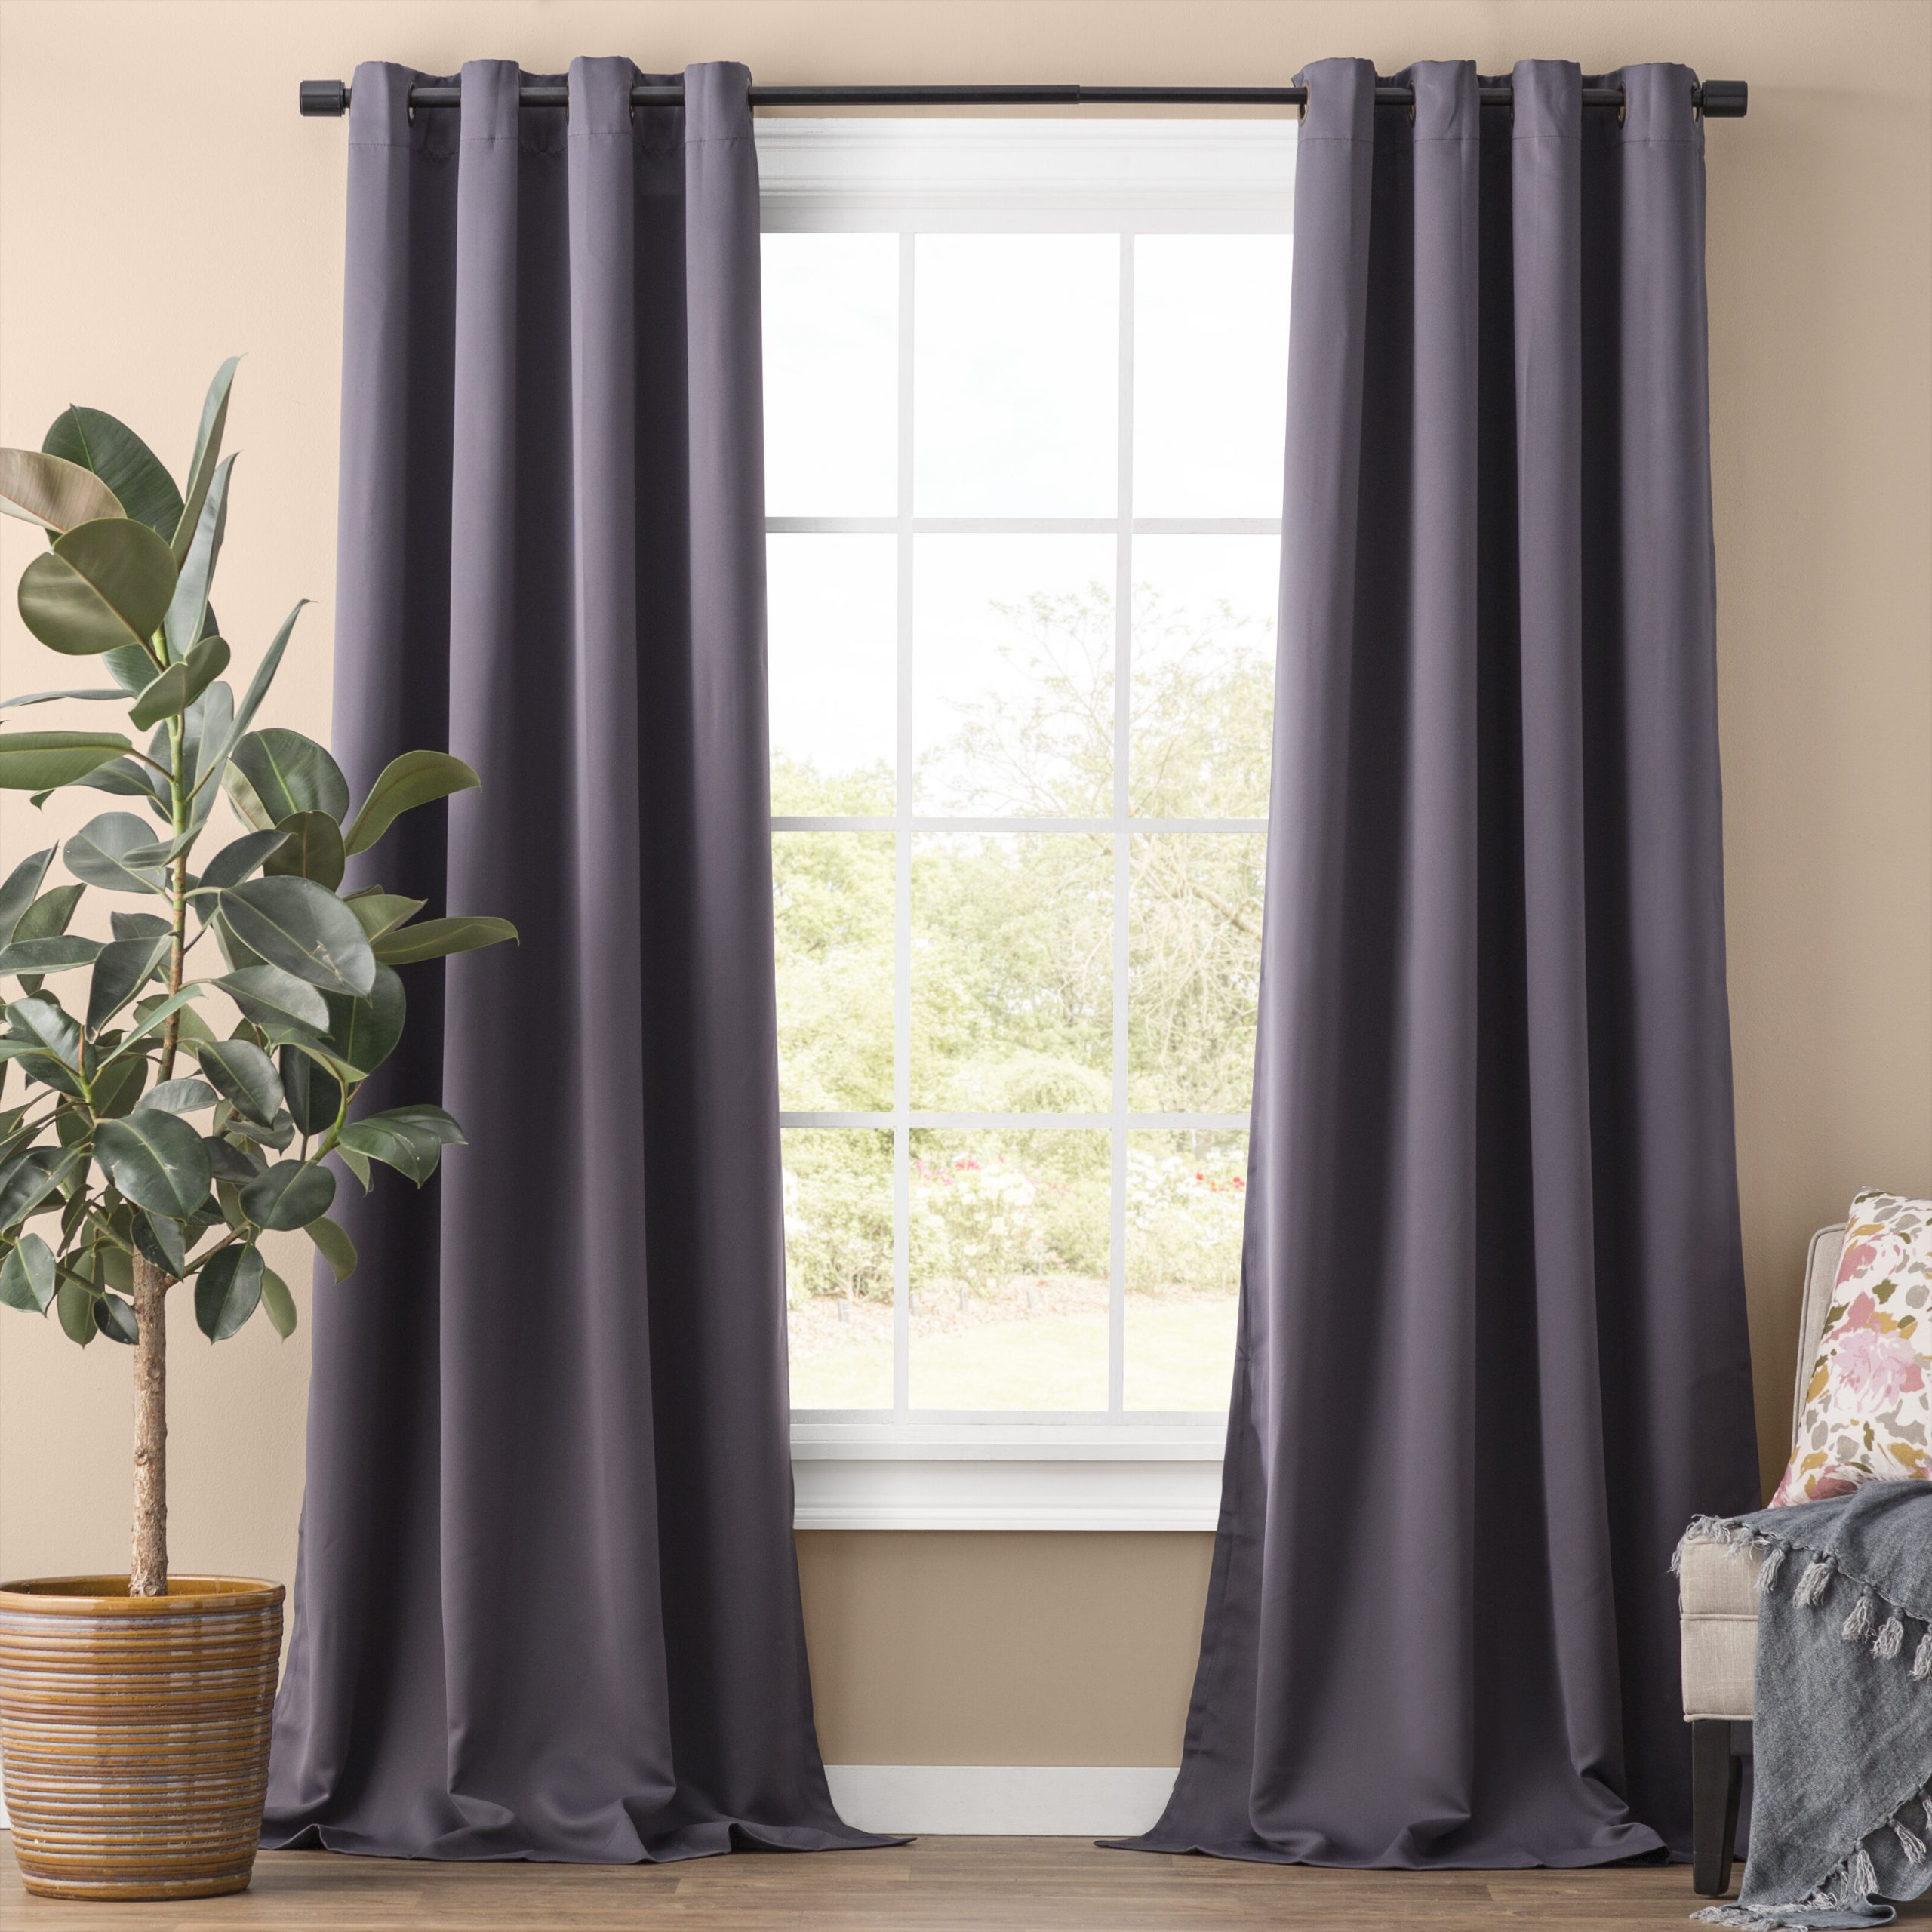 Most Recently Released Solid Blackout Thermal Grommet Curtain Panels Throughout Cooper Textured Thermal Insulated Grommet Curtain Panels (View 17 of 20)